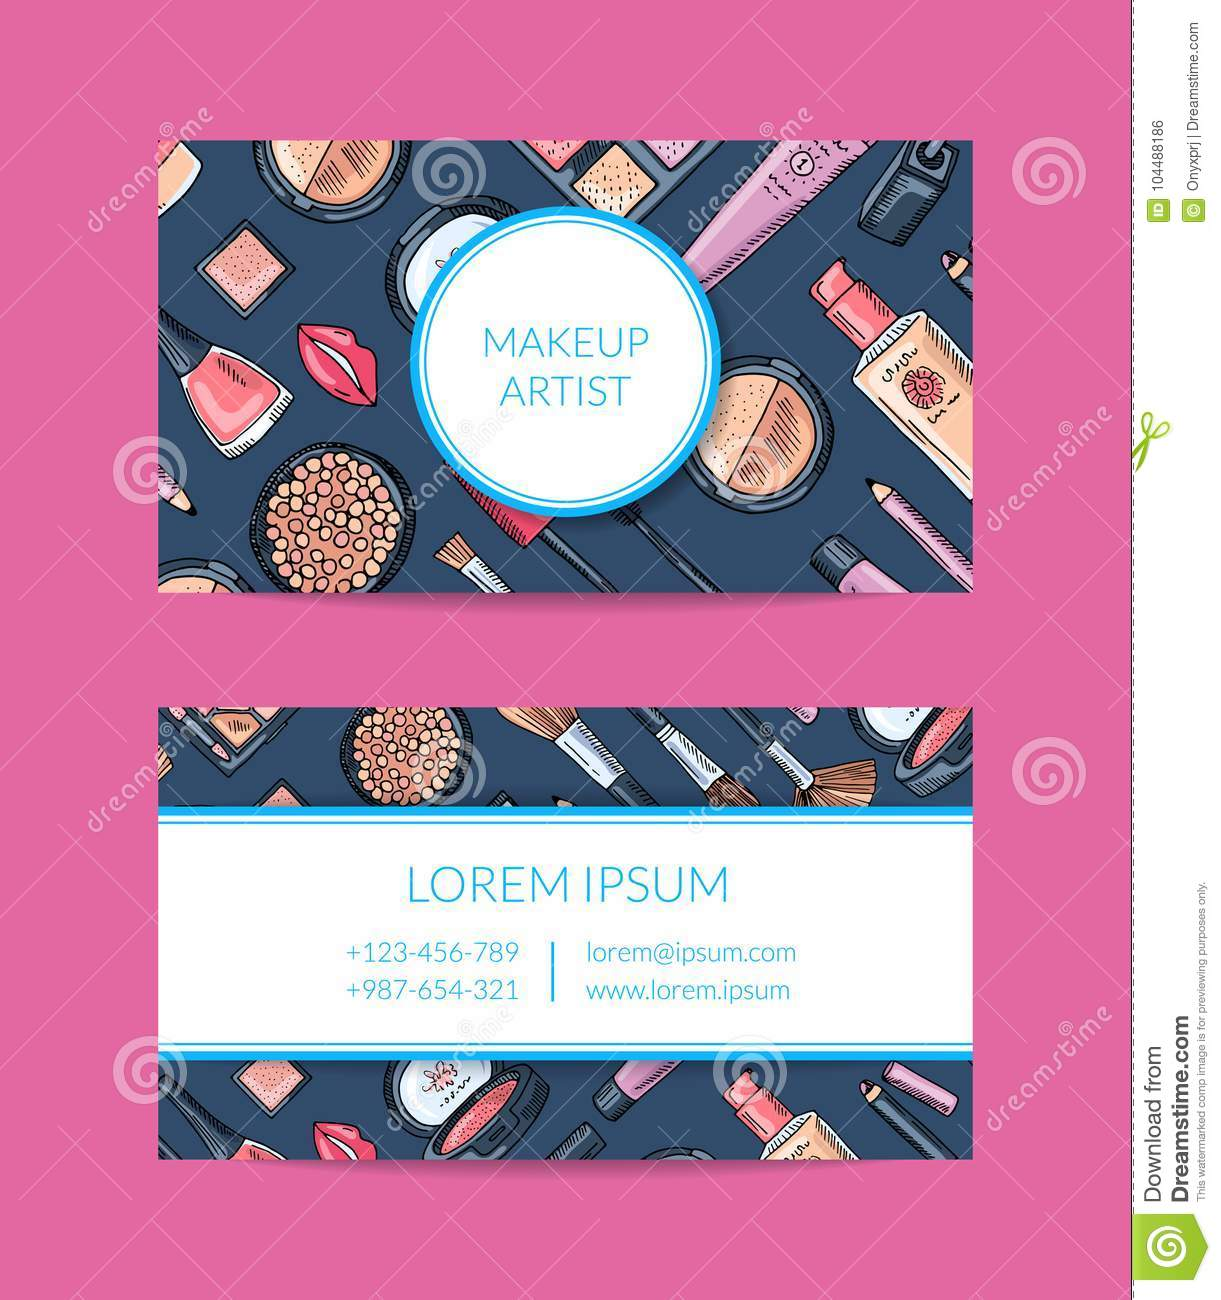 Vector Business Card Template For Beauty Brand Or Makeup Artist With